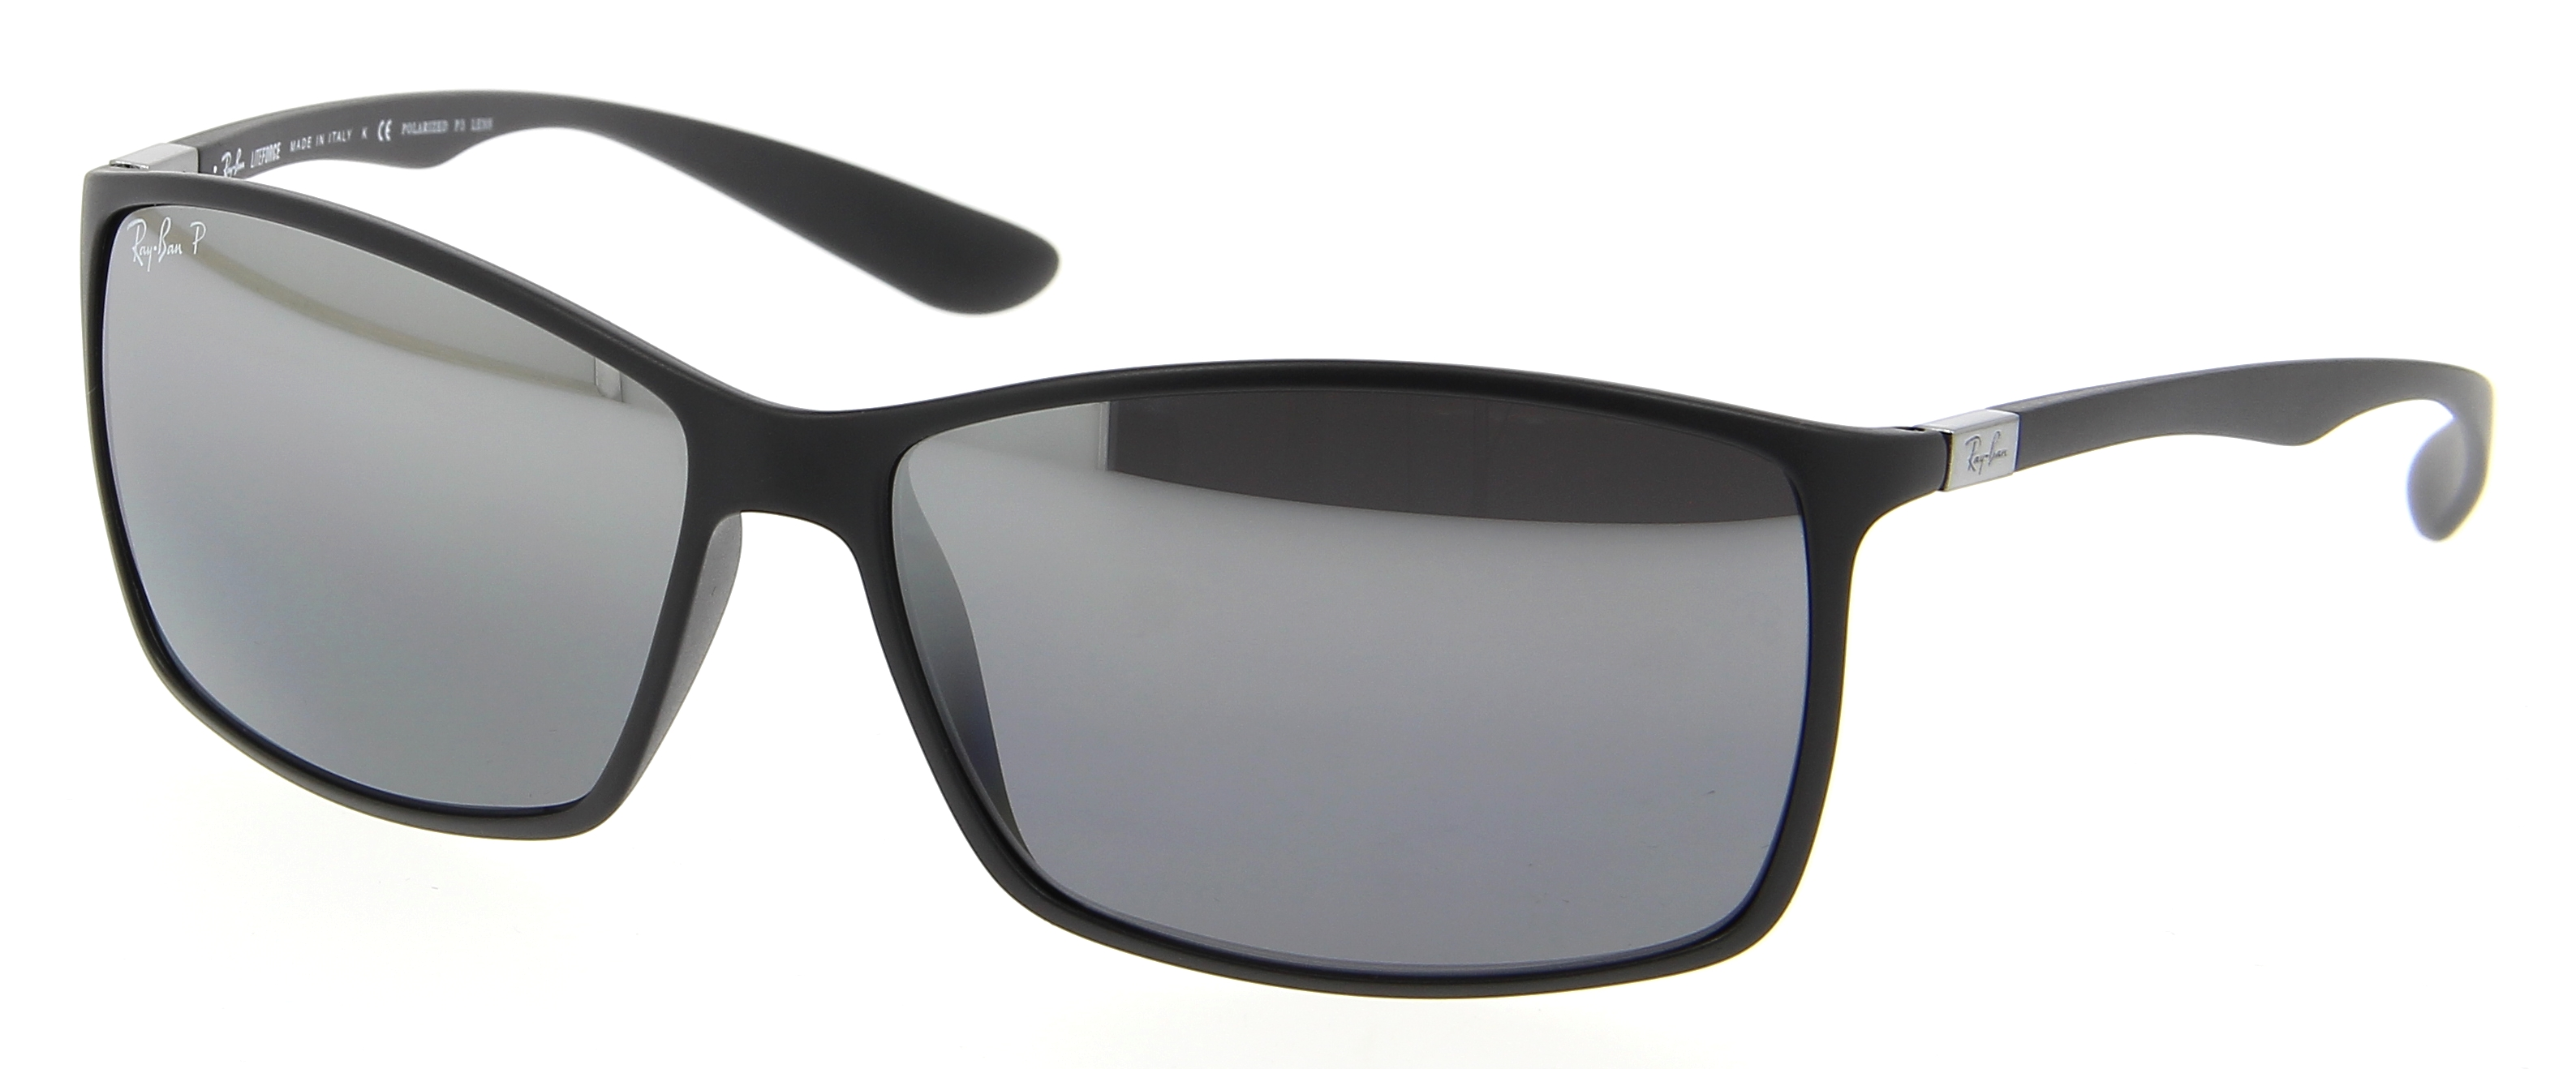 Lunette Soleil Ray Ban Optical Center   Les Baux-de-Provence 88dff3963282